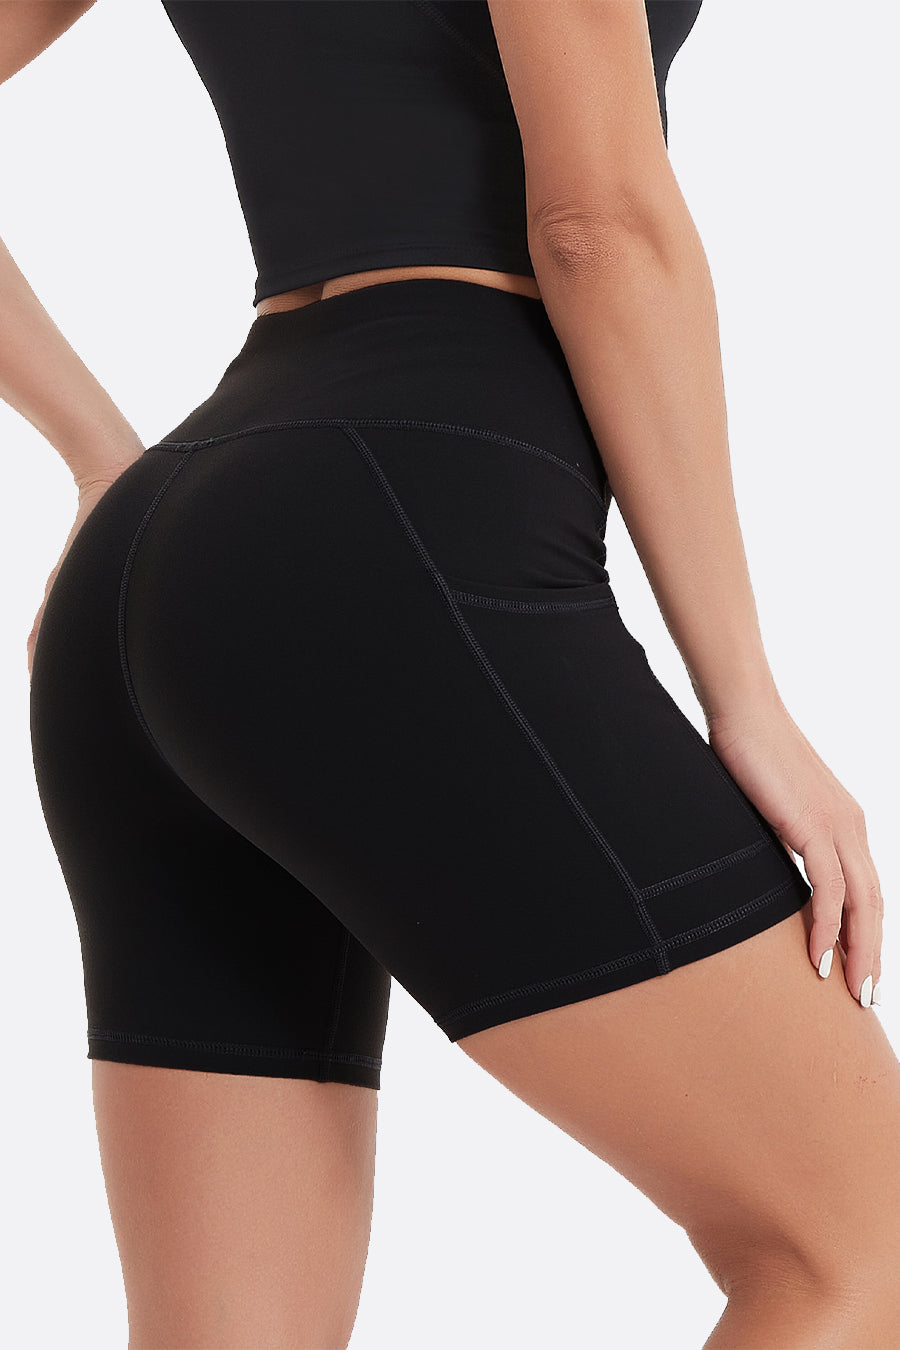 Women's Essential High Waisted Yoga Shorts 5""